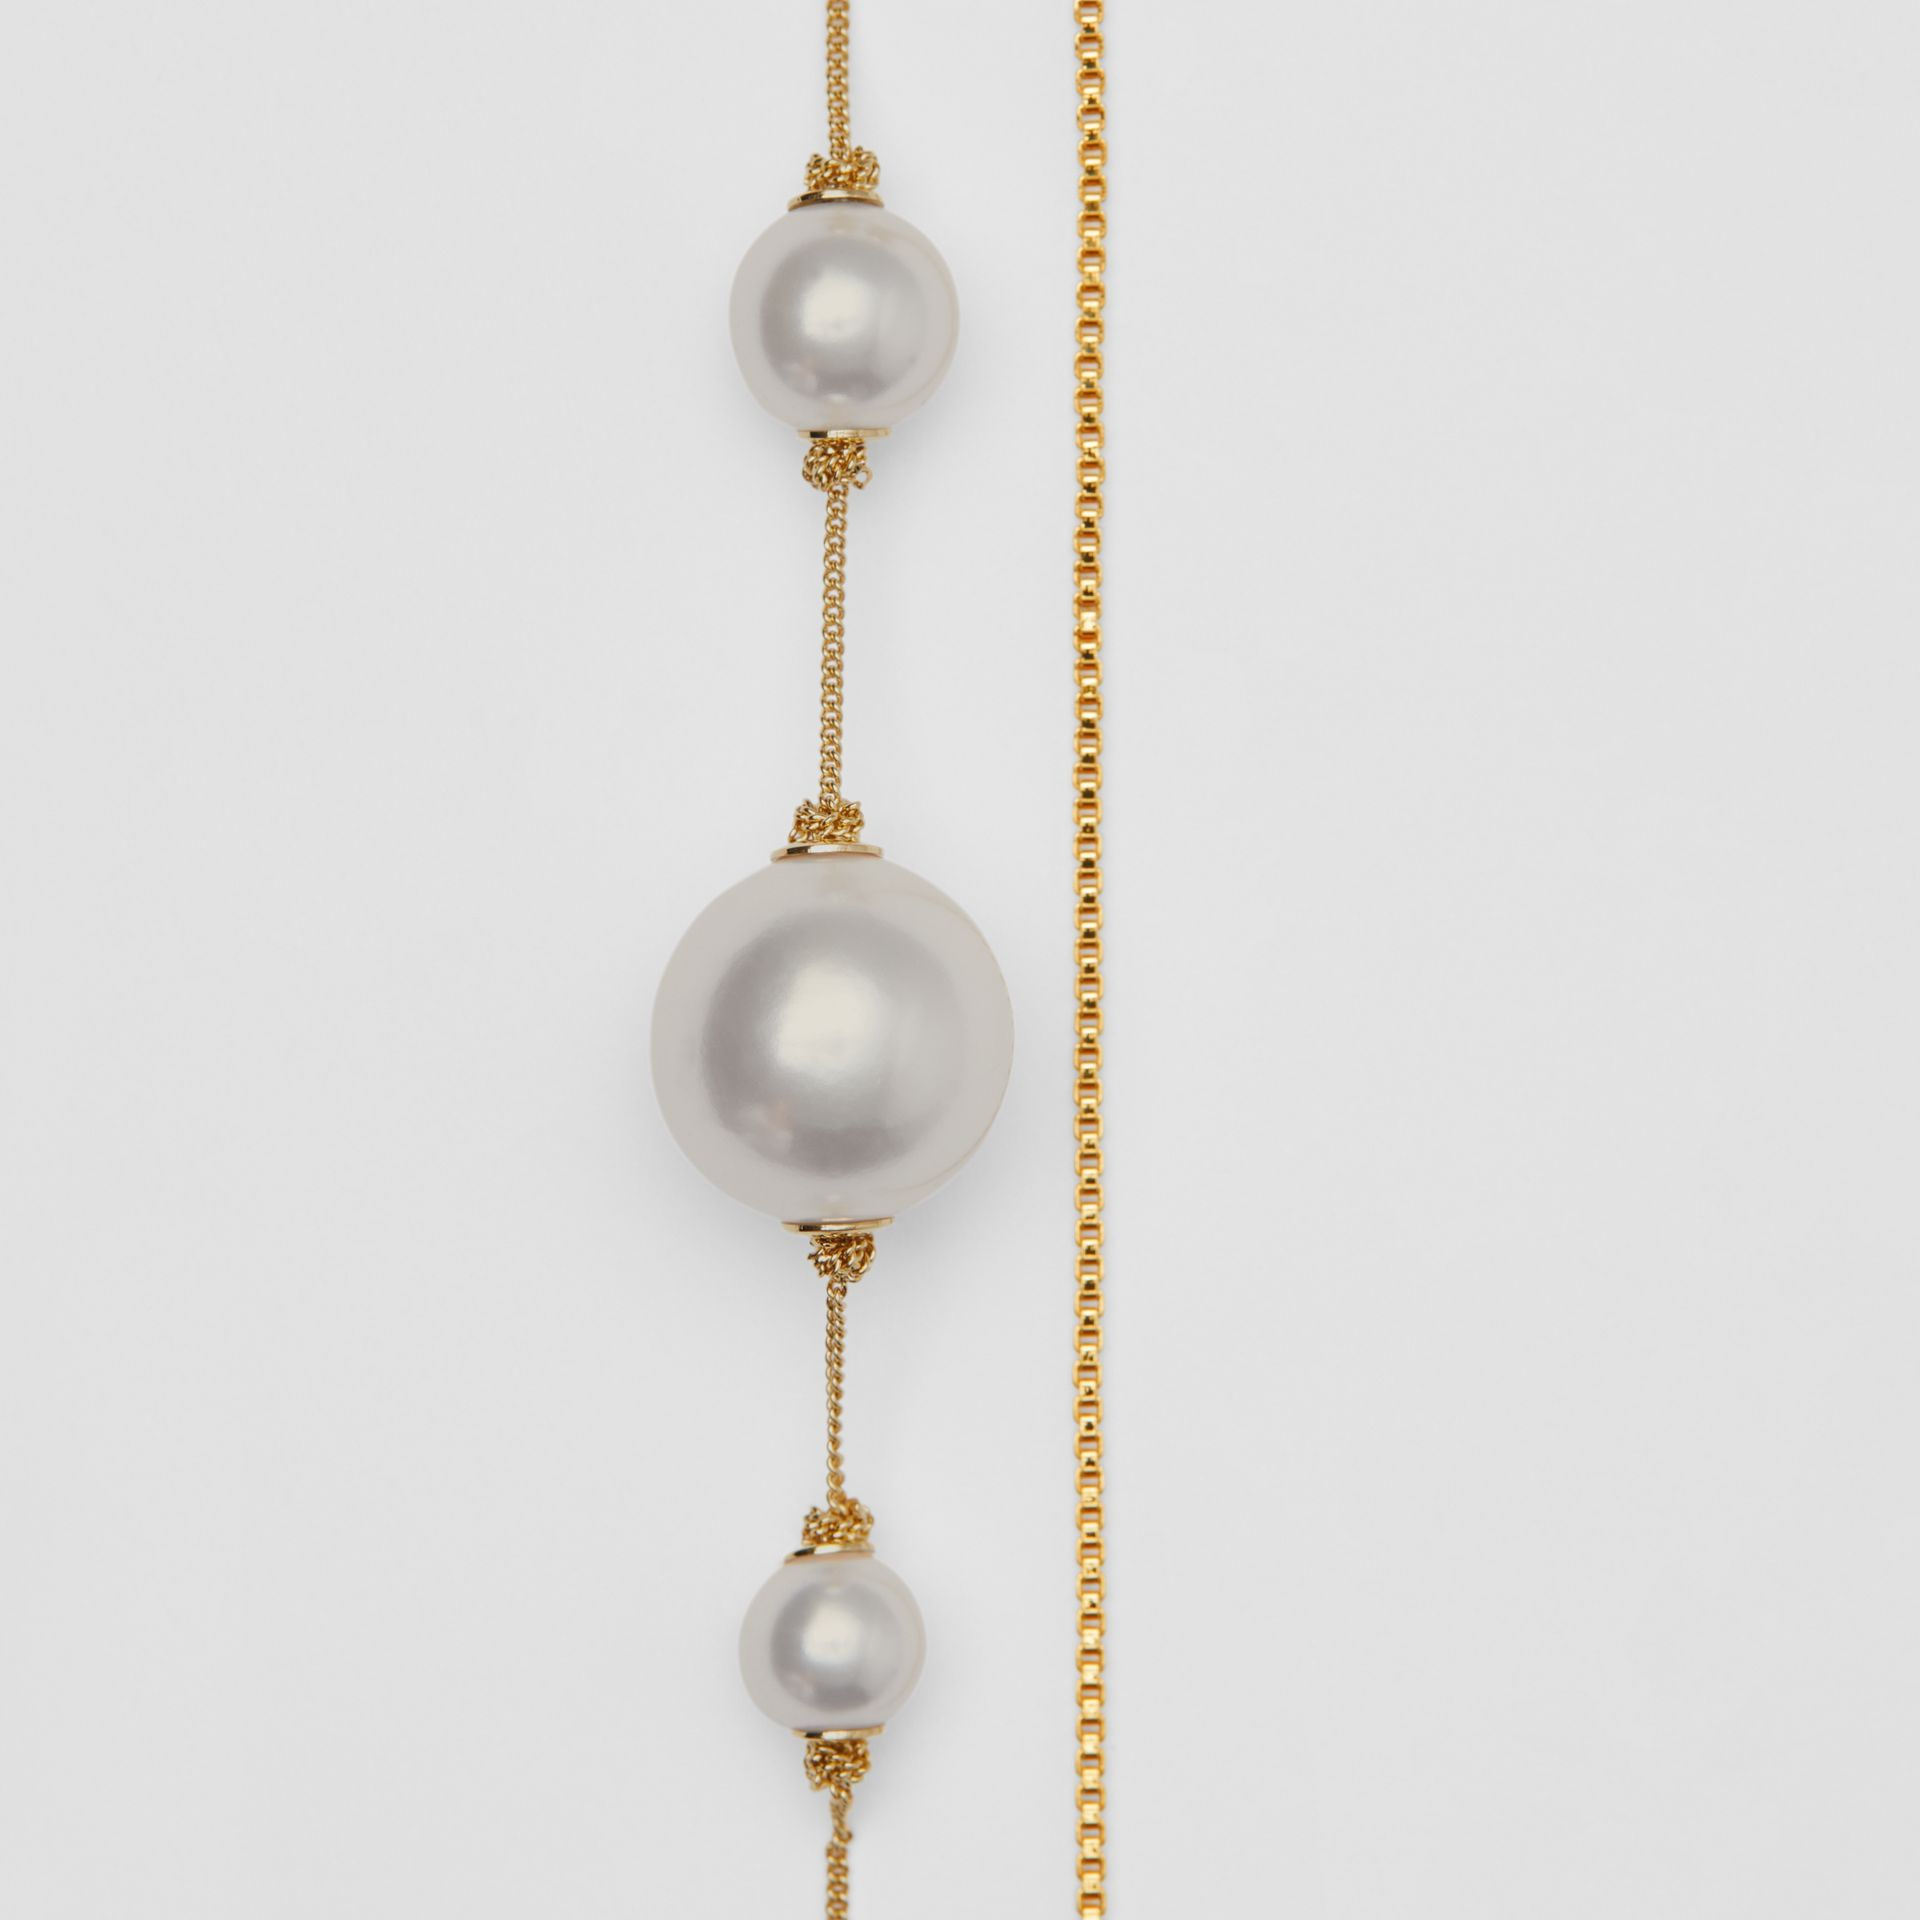 Faux Pearl and Oval Gold-plated Drop Earrings in Light - Women | Burberry - gallery image 2